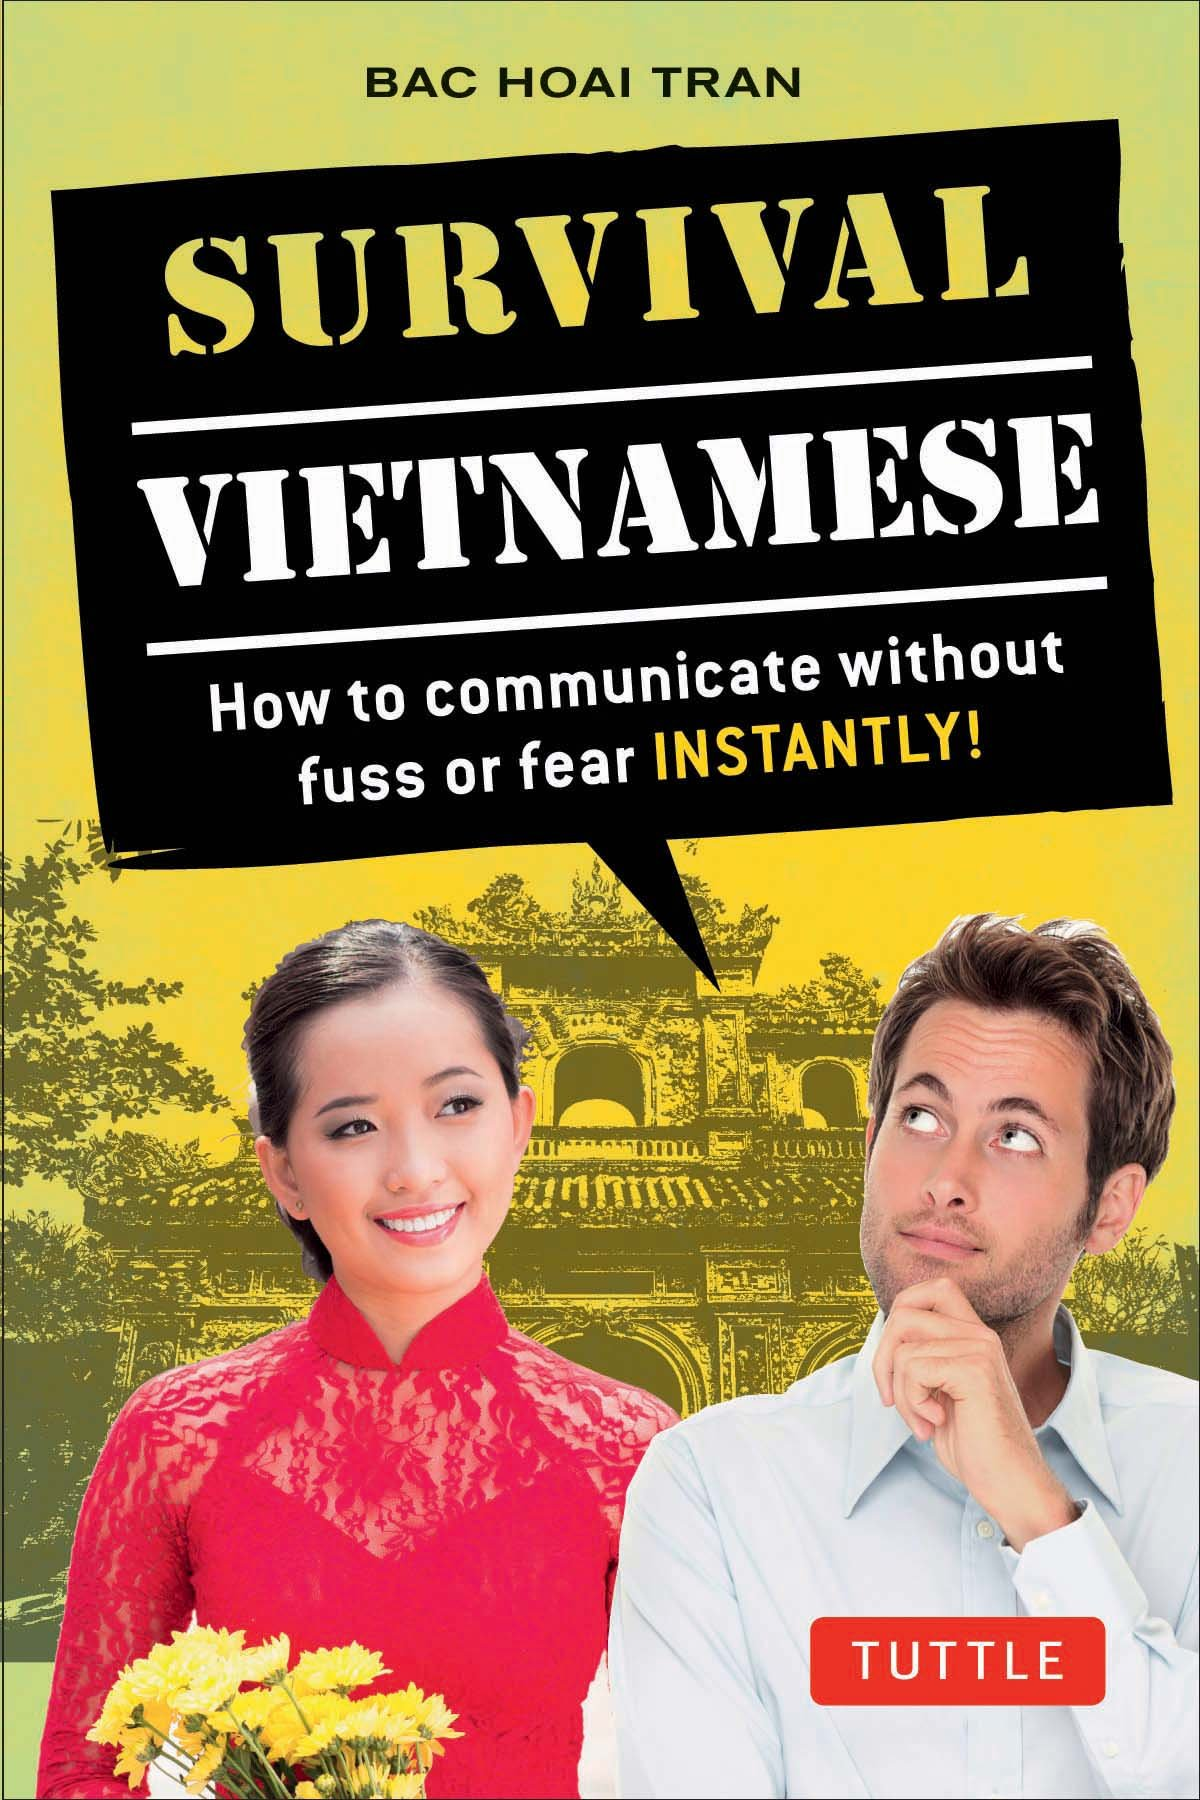 Survival Vietnamese: How to Communicate without Fuss or Fear - Instantly! (Vietnamese Phrasebook & Dictionary) (Survival Series) PDF